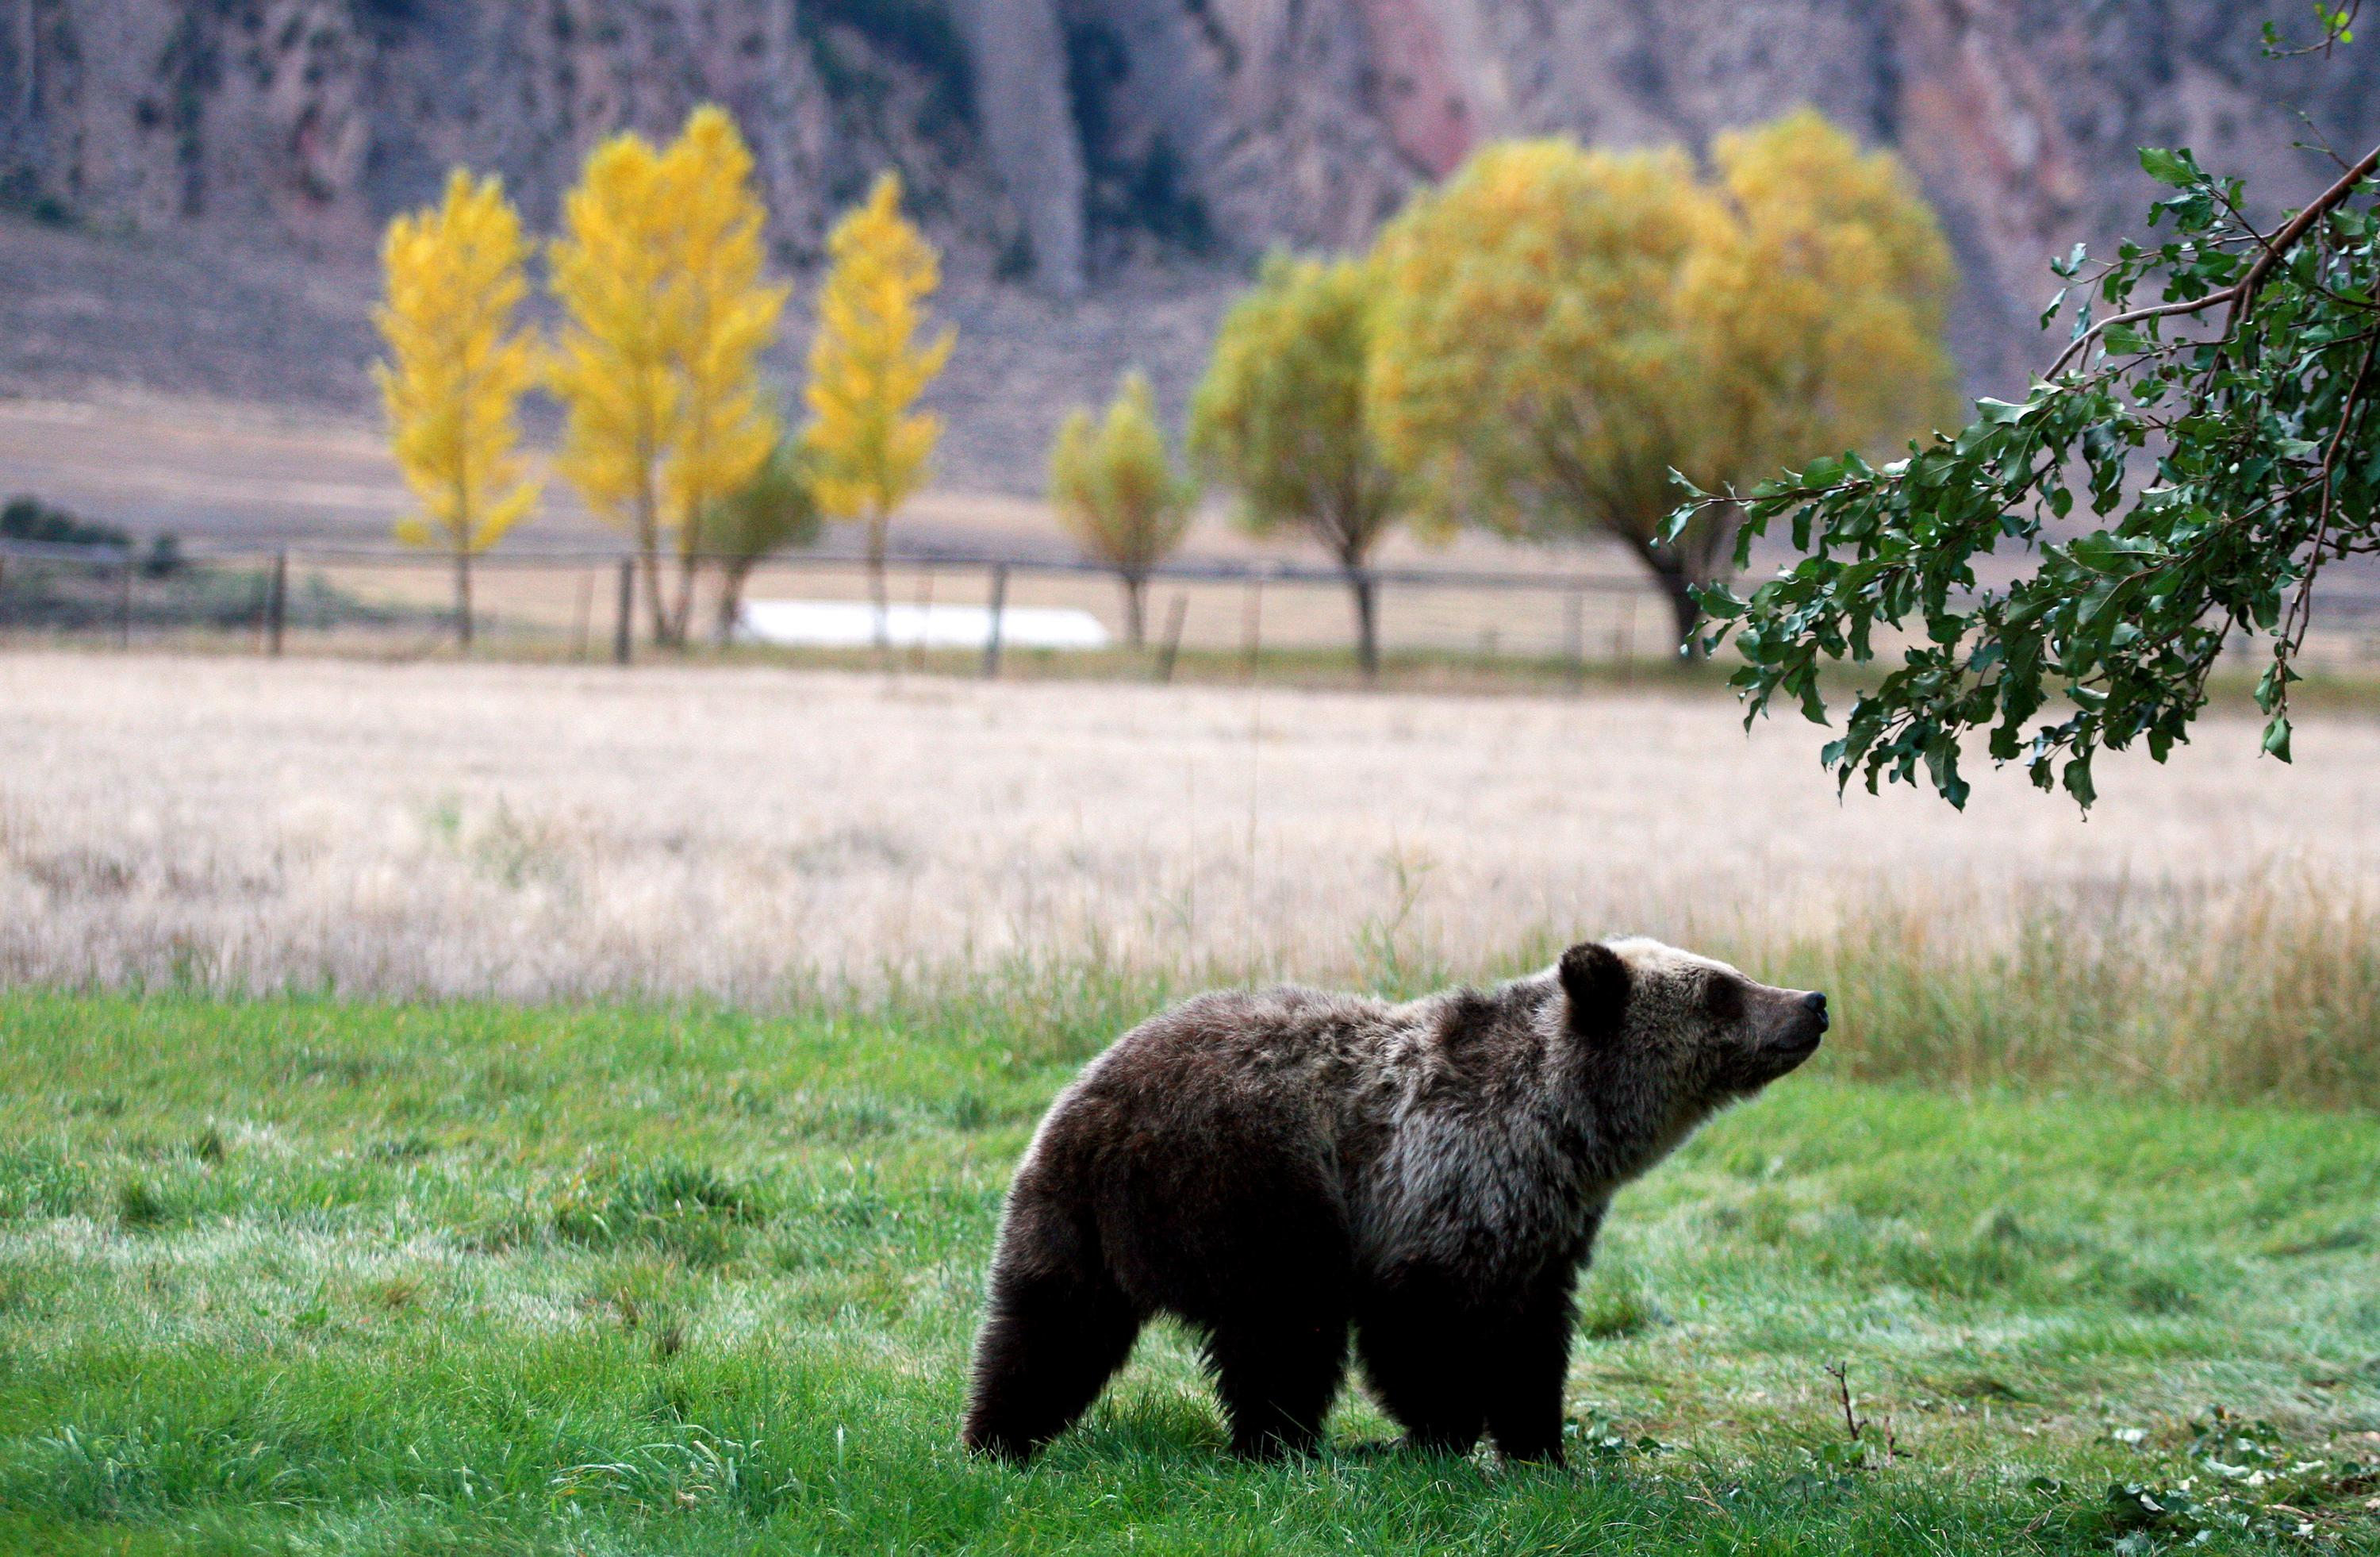 FILE - In this Sept. 25, 2013, file photo, a grizzly bear cub searches for fallen fruit beneath an apple tree a few miles from the north entrance to Yellowstone National Park in Gardiner, Mont. On Monday, Sept. 24, 2018, a federal judge restored federal protections to grizzly bears in the Northern Rocky Mountains and blocked the first hunts planned for the animals in the Lower 48 states in almost three decades. (Alan Rogers/The Casper Star-Tribune via AP, File)